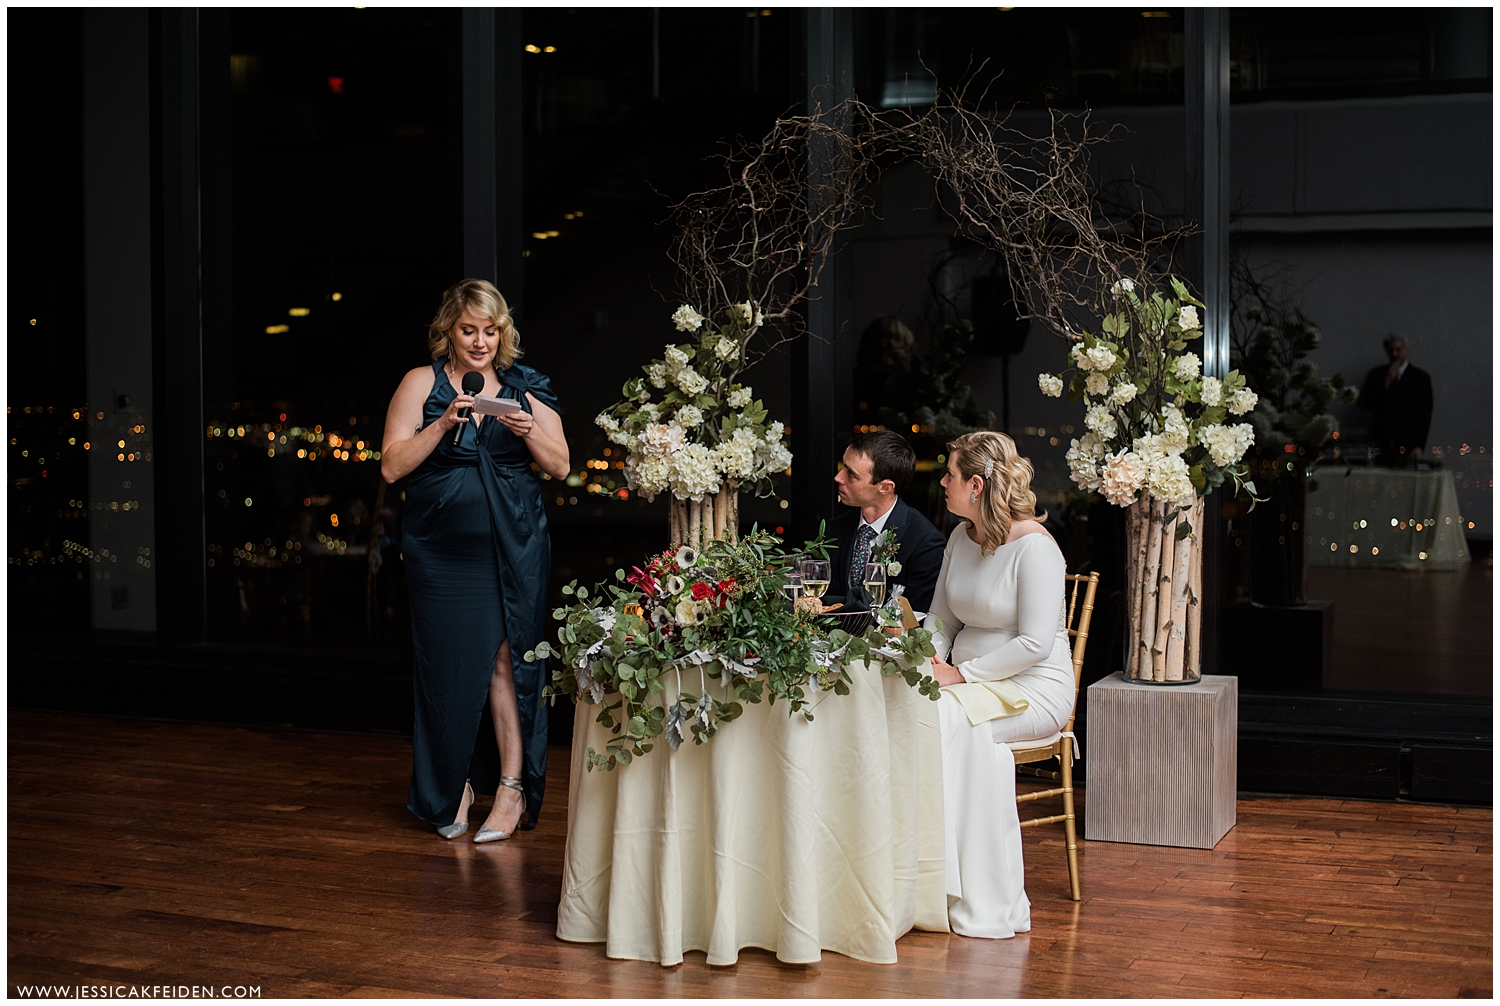 Jessica K Feiden Photography_The State Room Boston Wedding Photographer_0061.jpg